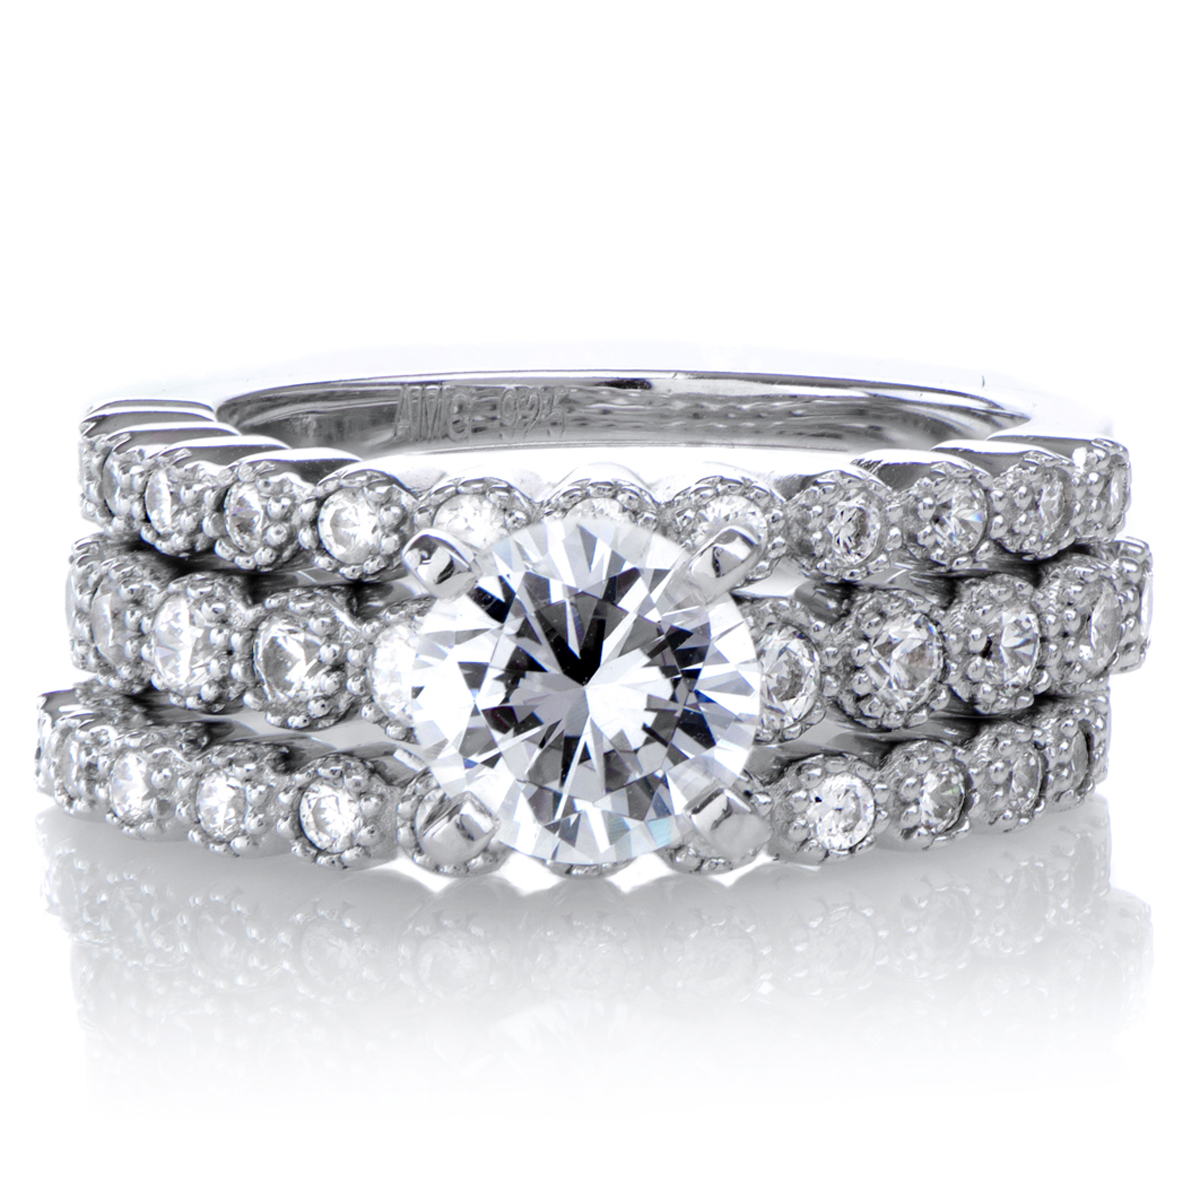 cubic zirconia round wedding ring set triple band wedding ring Roll Off Image to Close Zoom Window